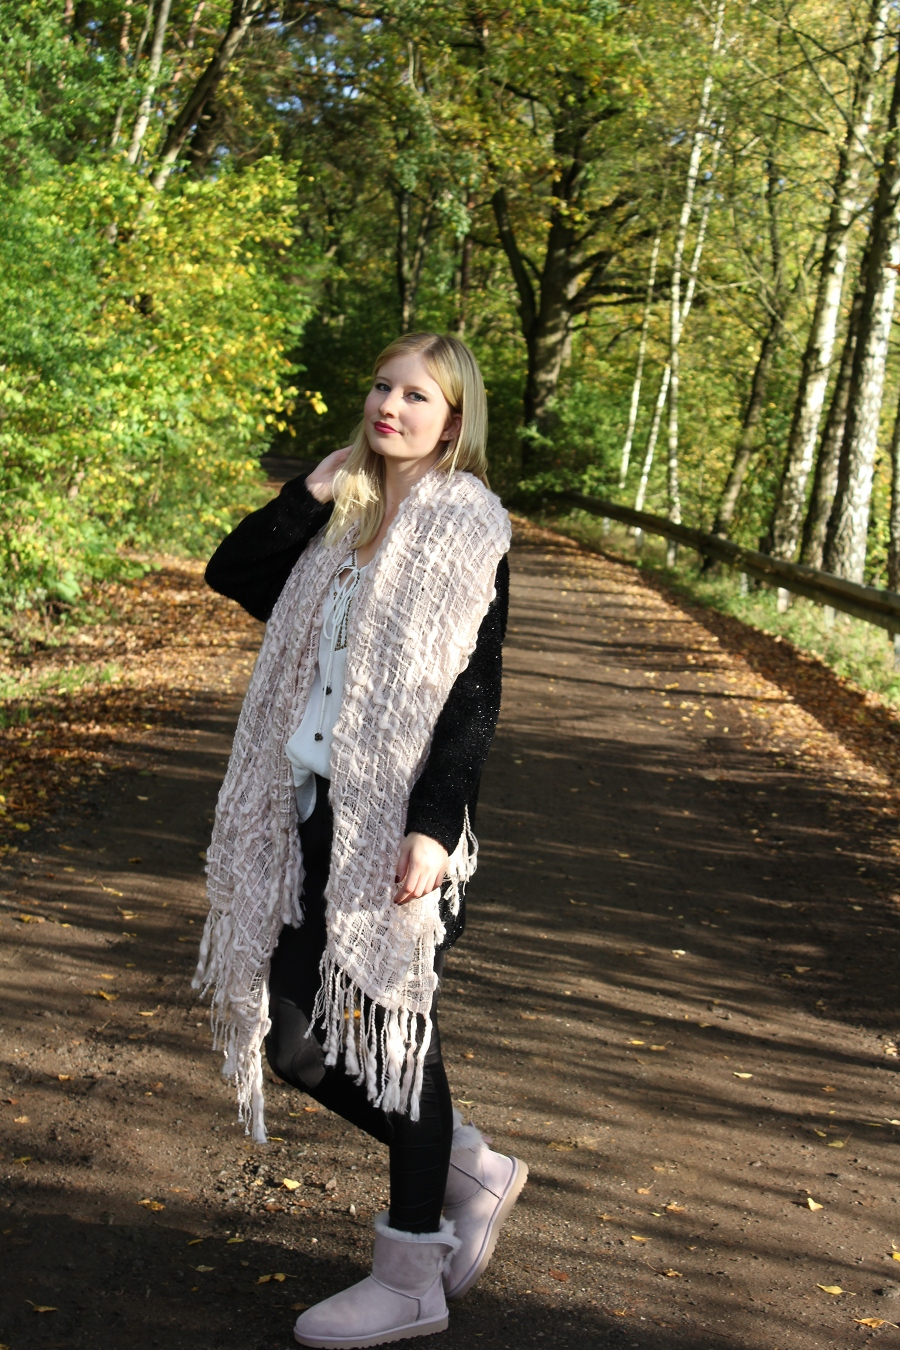 outfit-smile-lippenstift-rebell-pink-xxl-scarf-cozy-autumn-sun